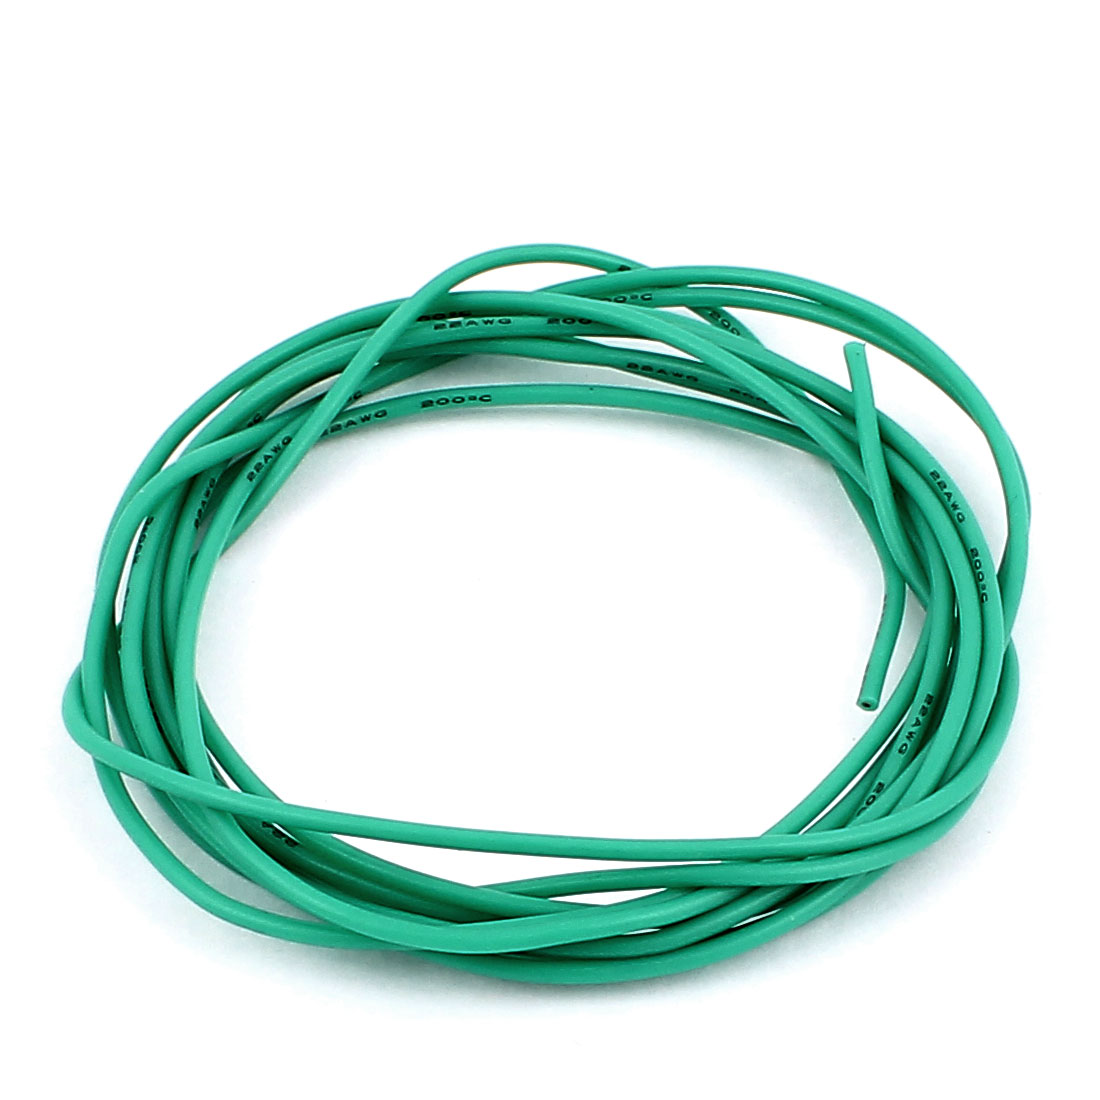 2M 6.6Ft 22AWG Electric Copper Core Flexible Silicone Wire Cable Green